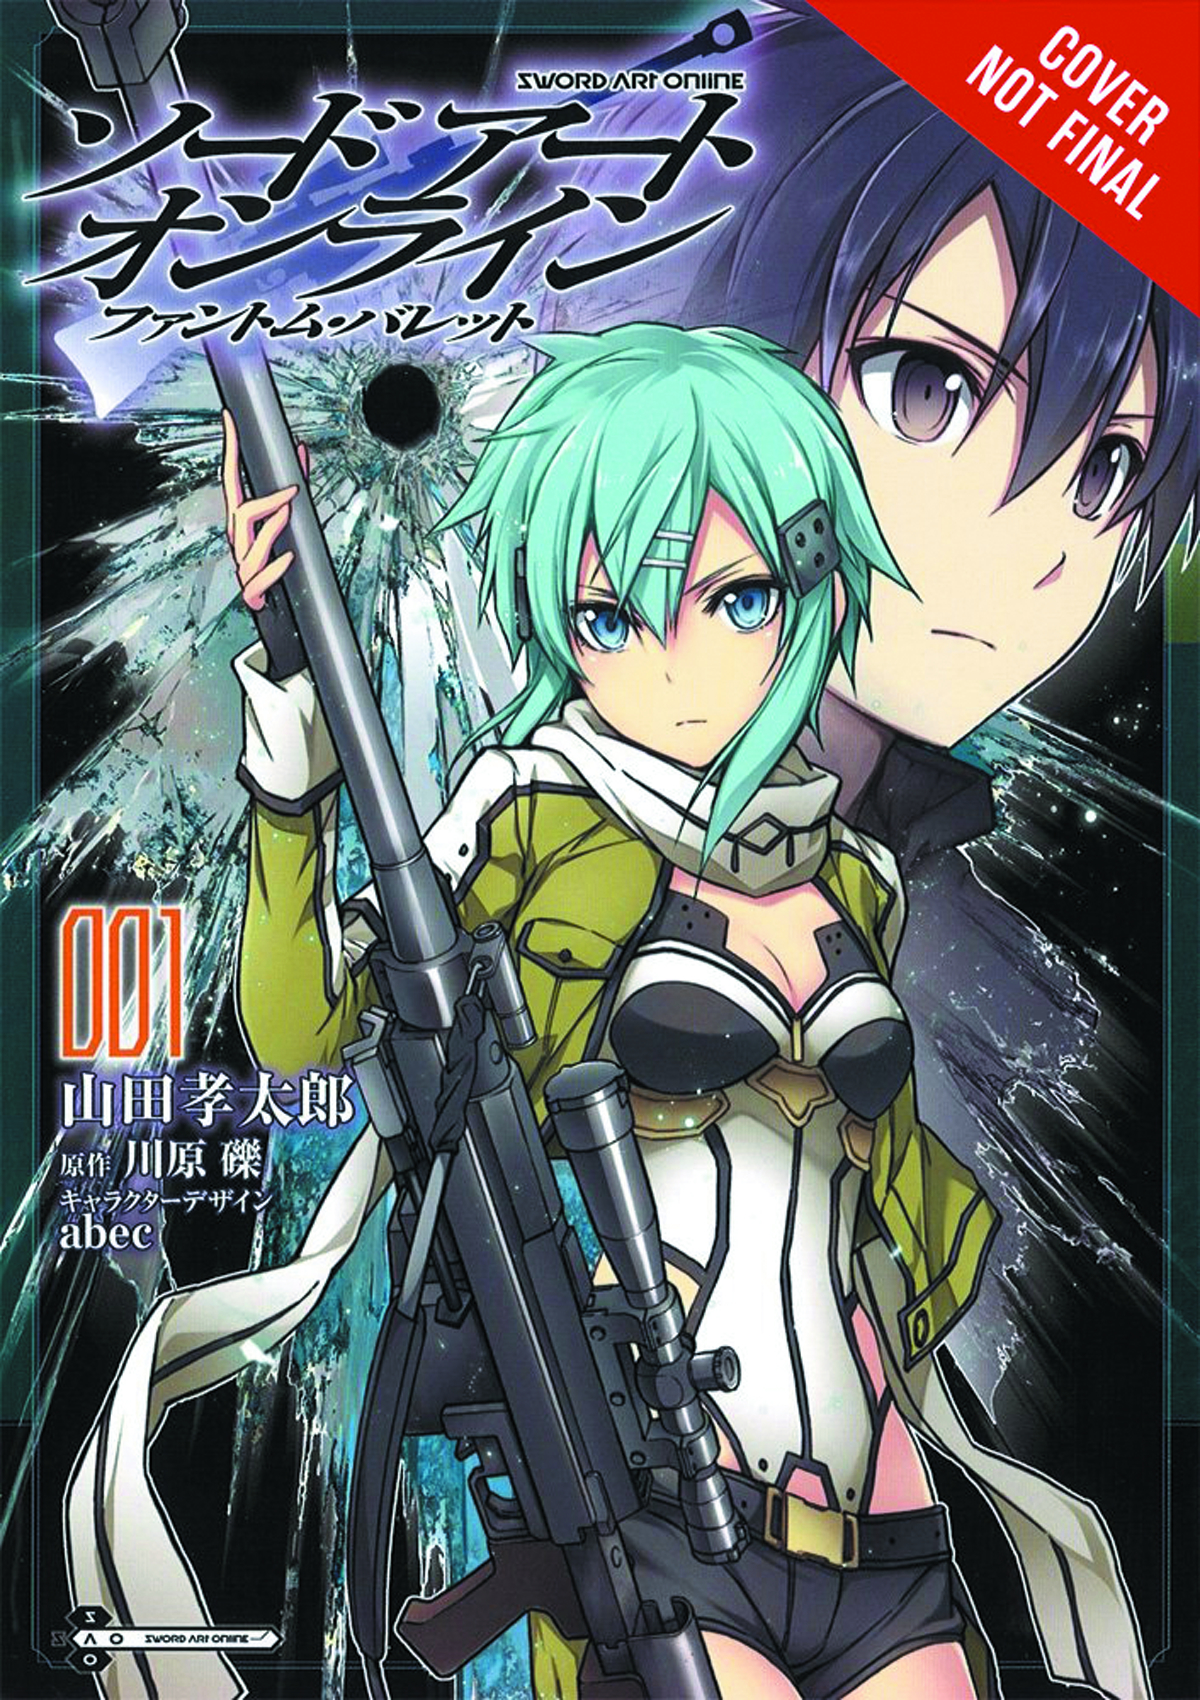 SWORD ART ONLINE PHANTOM BULLET GN VOL 01